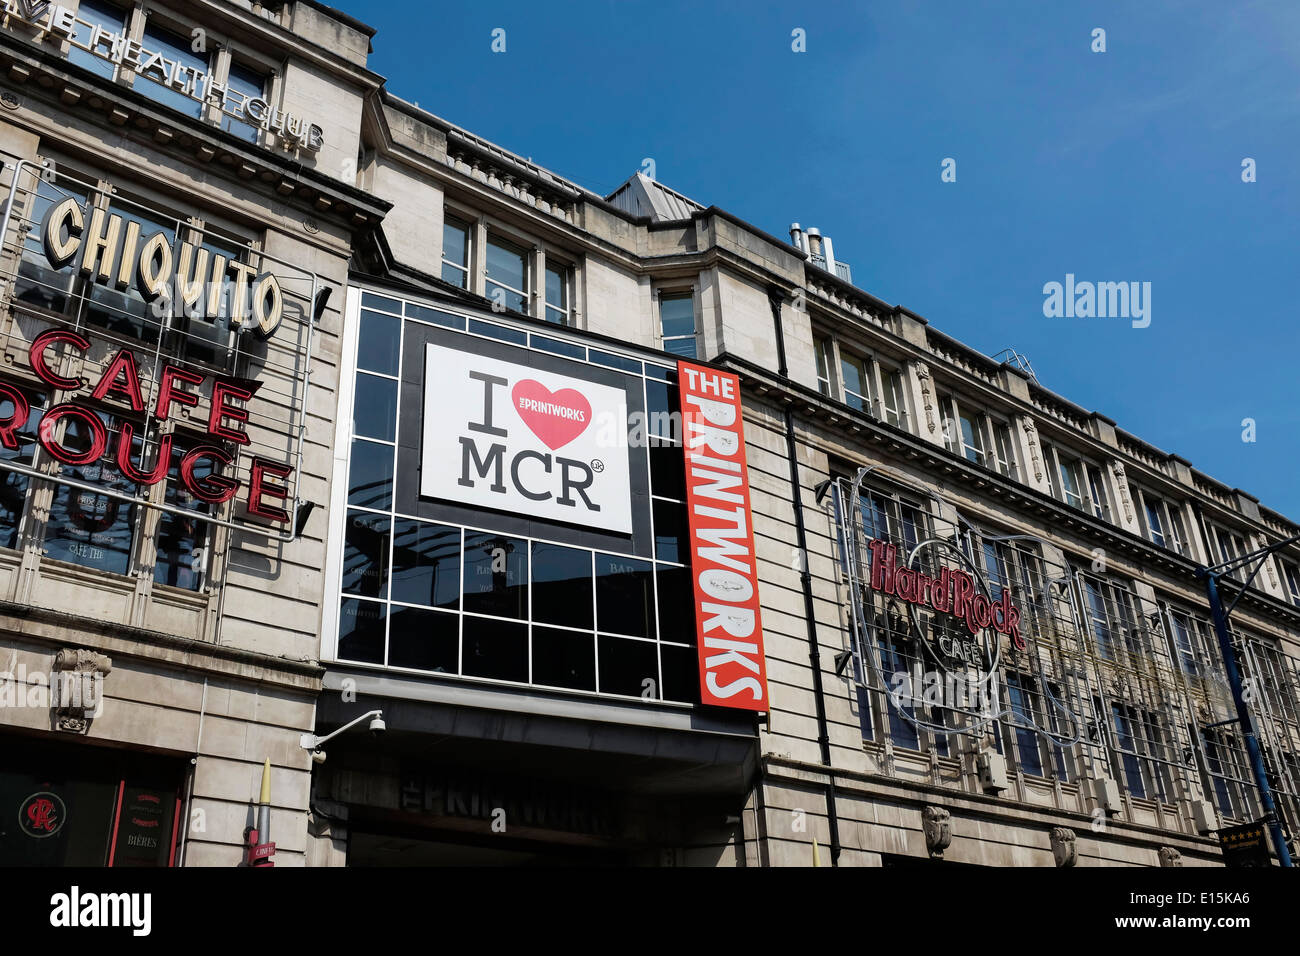 The Printworks building in Manchester city centre UK Stock Photo